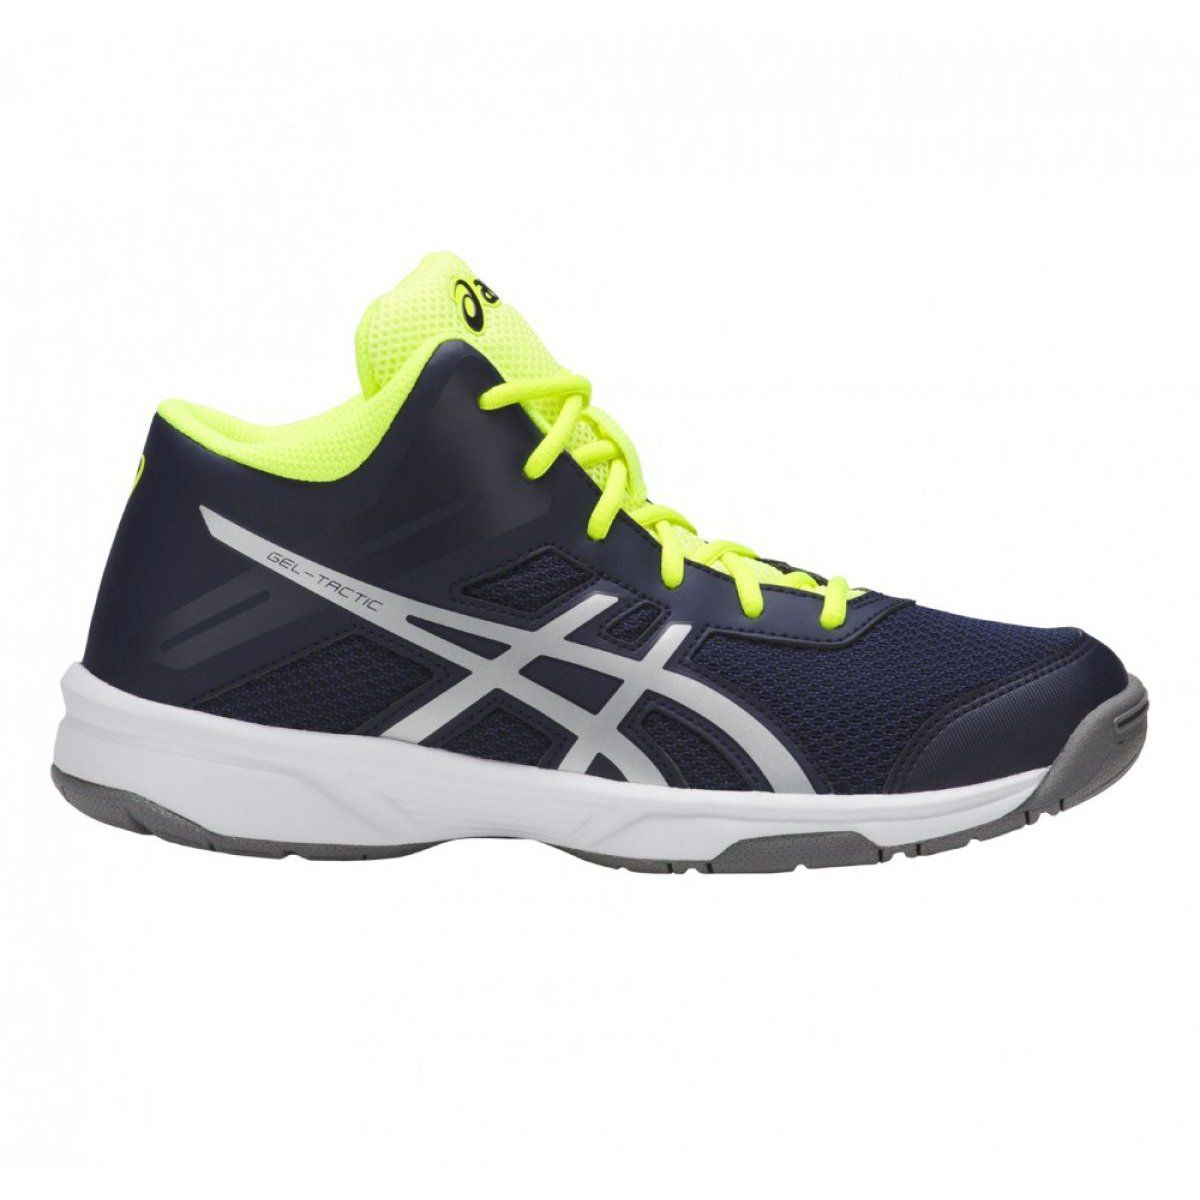 Volleyball Shoes Asics Gel Tactic Mt Gs Jr C732y 400 400 Navy Multicolored Volleyball Shoes Asics Asics Gel